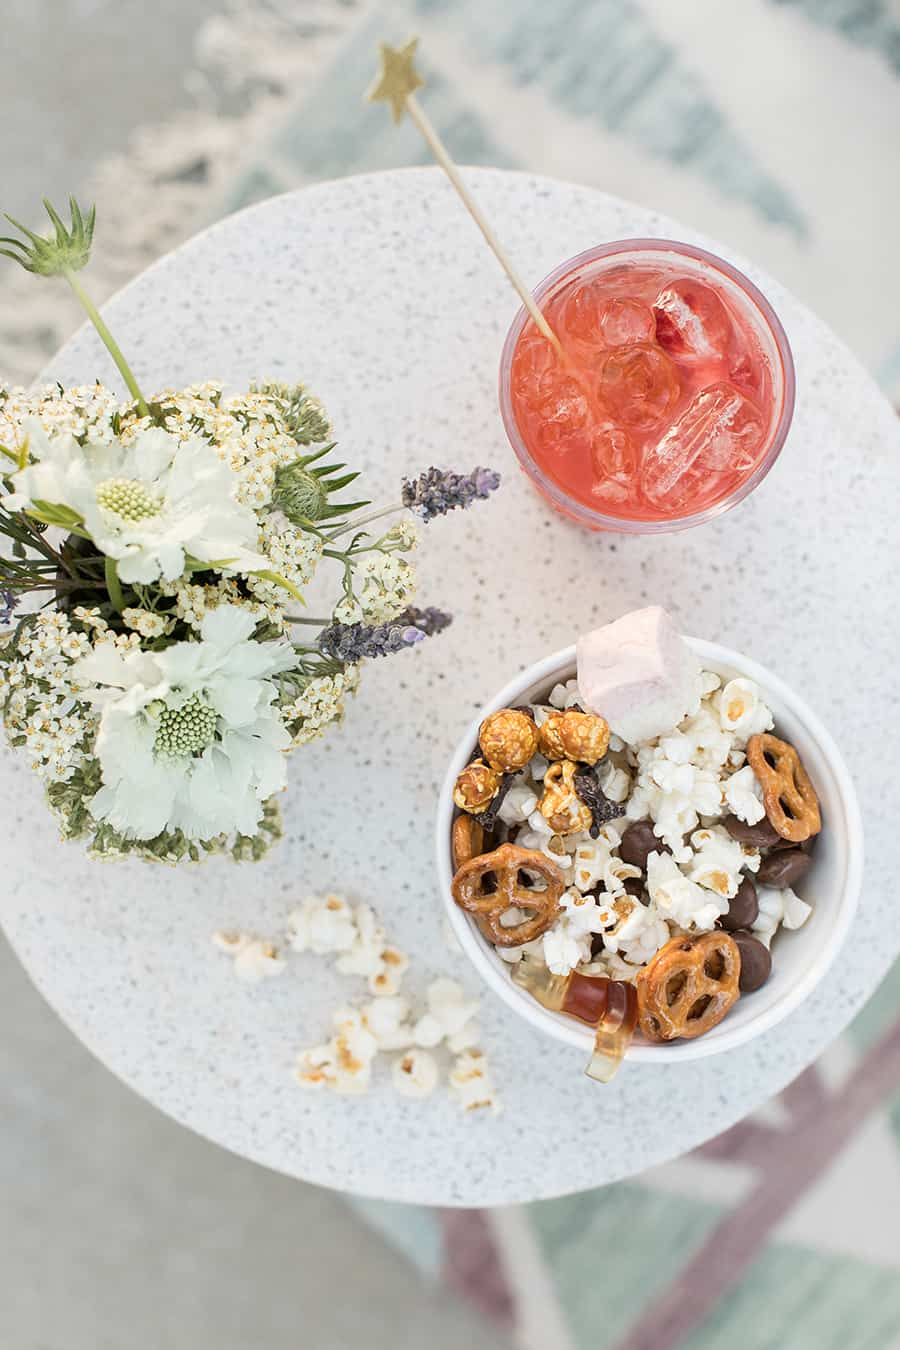 overhead photo of red cocktail and a bowl of popcorn with flowers on an outdoor table.